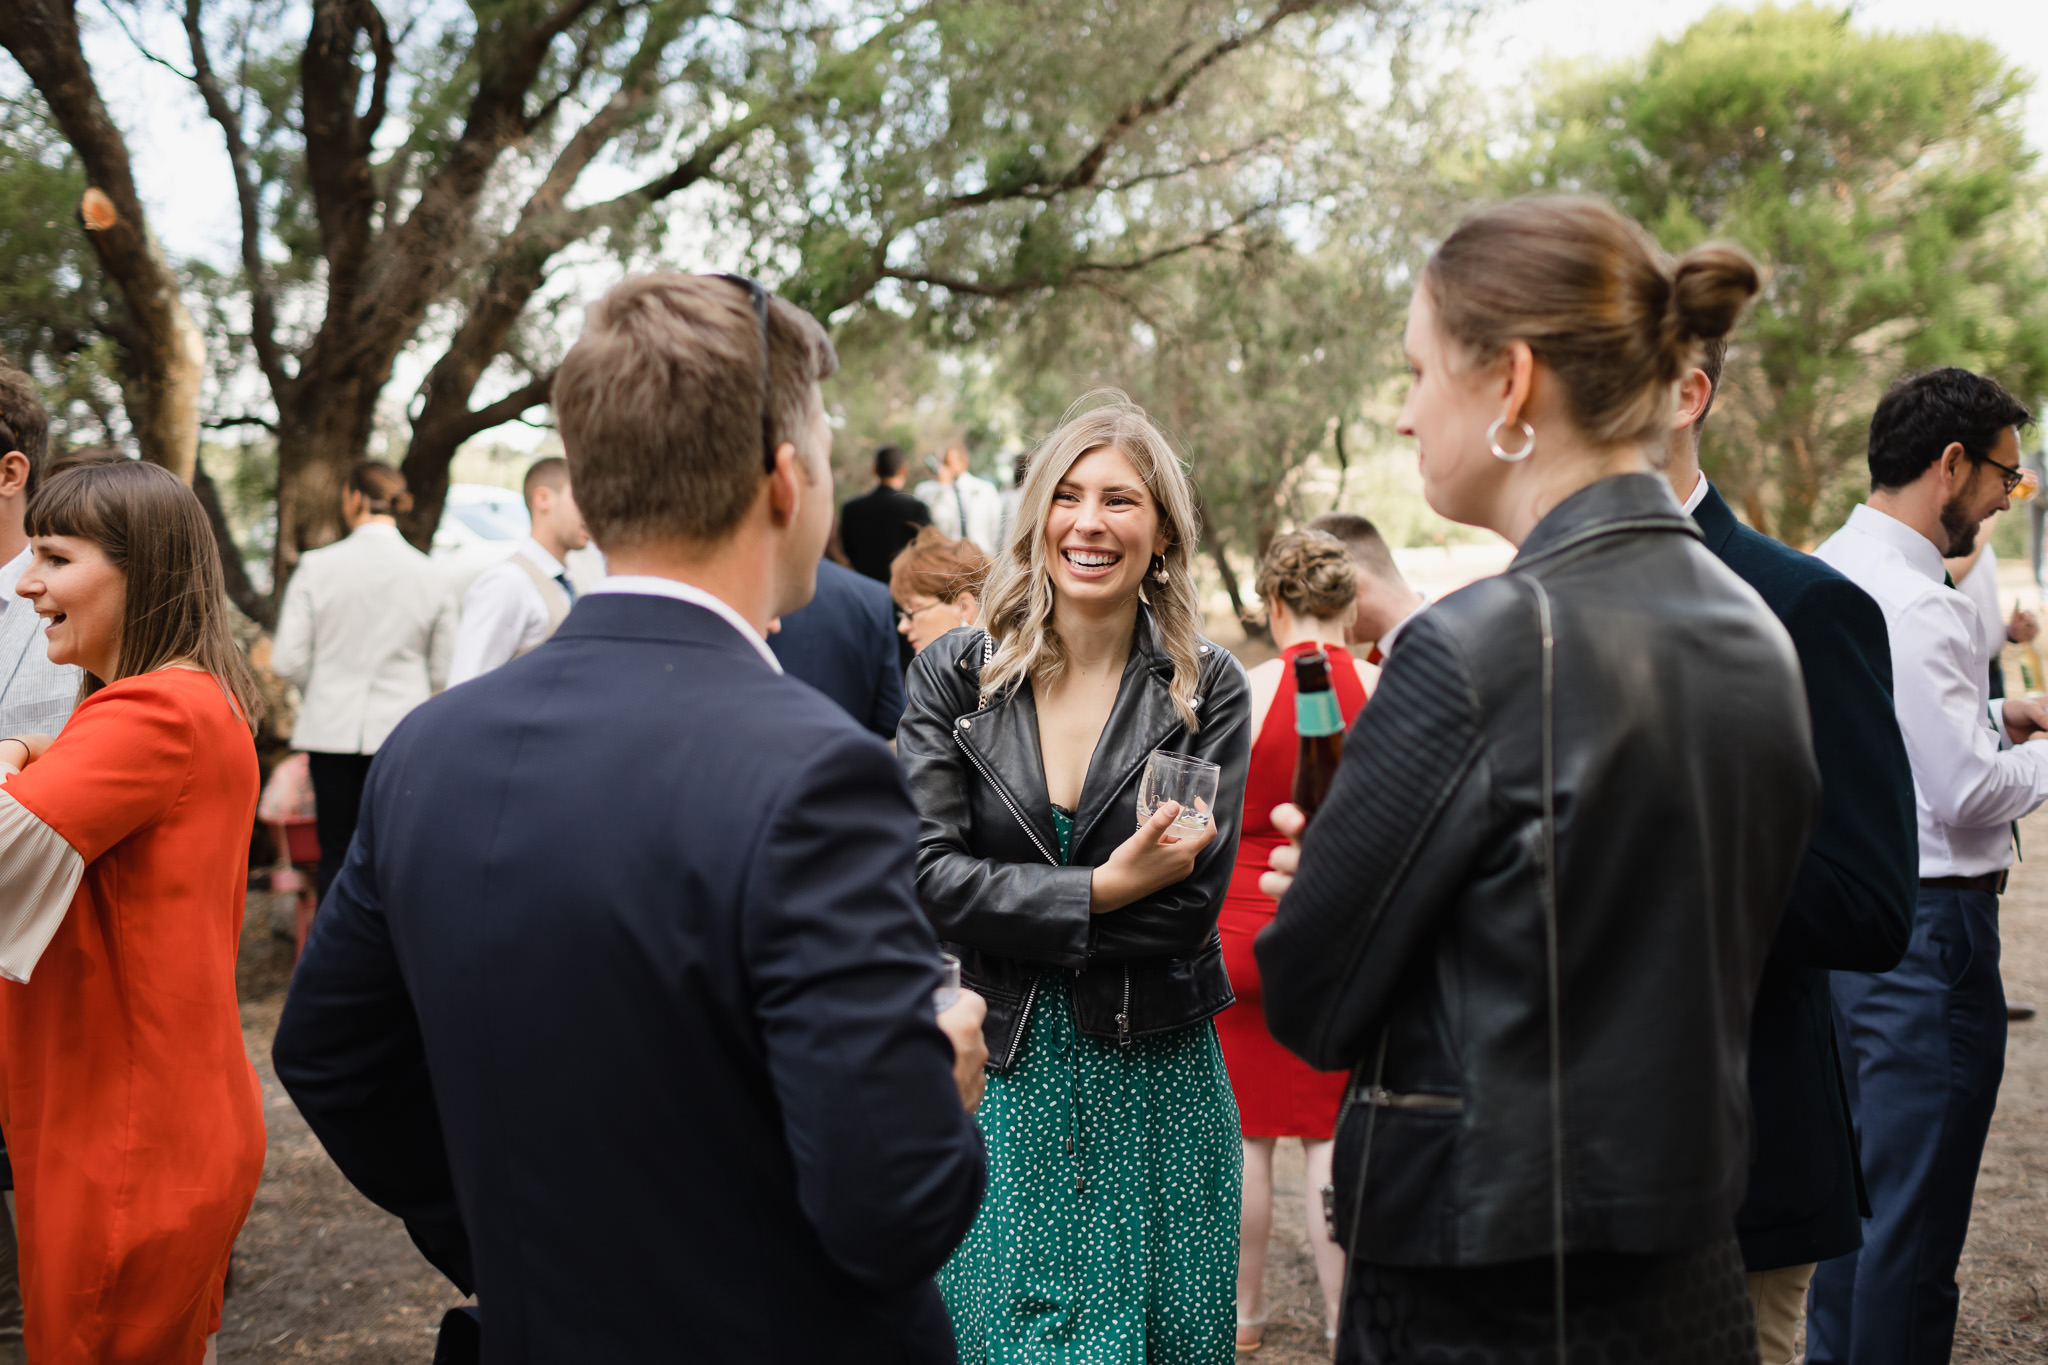 Girl in leather jacket and green dress with white polkadots laughing during wedding celebrations